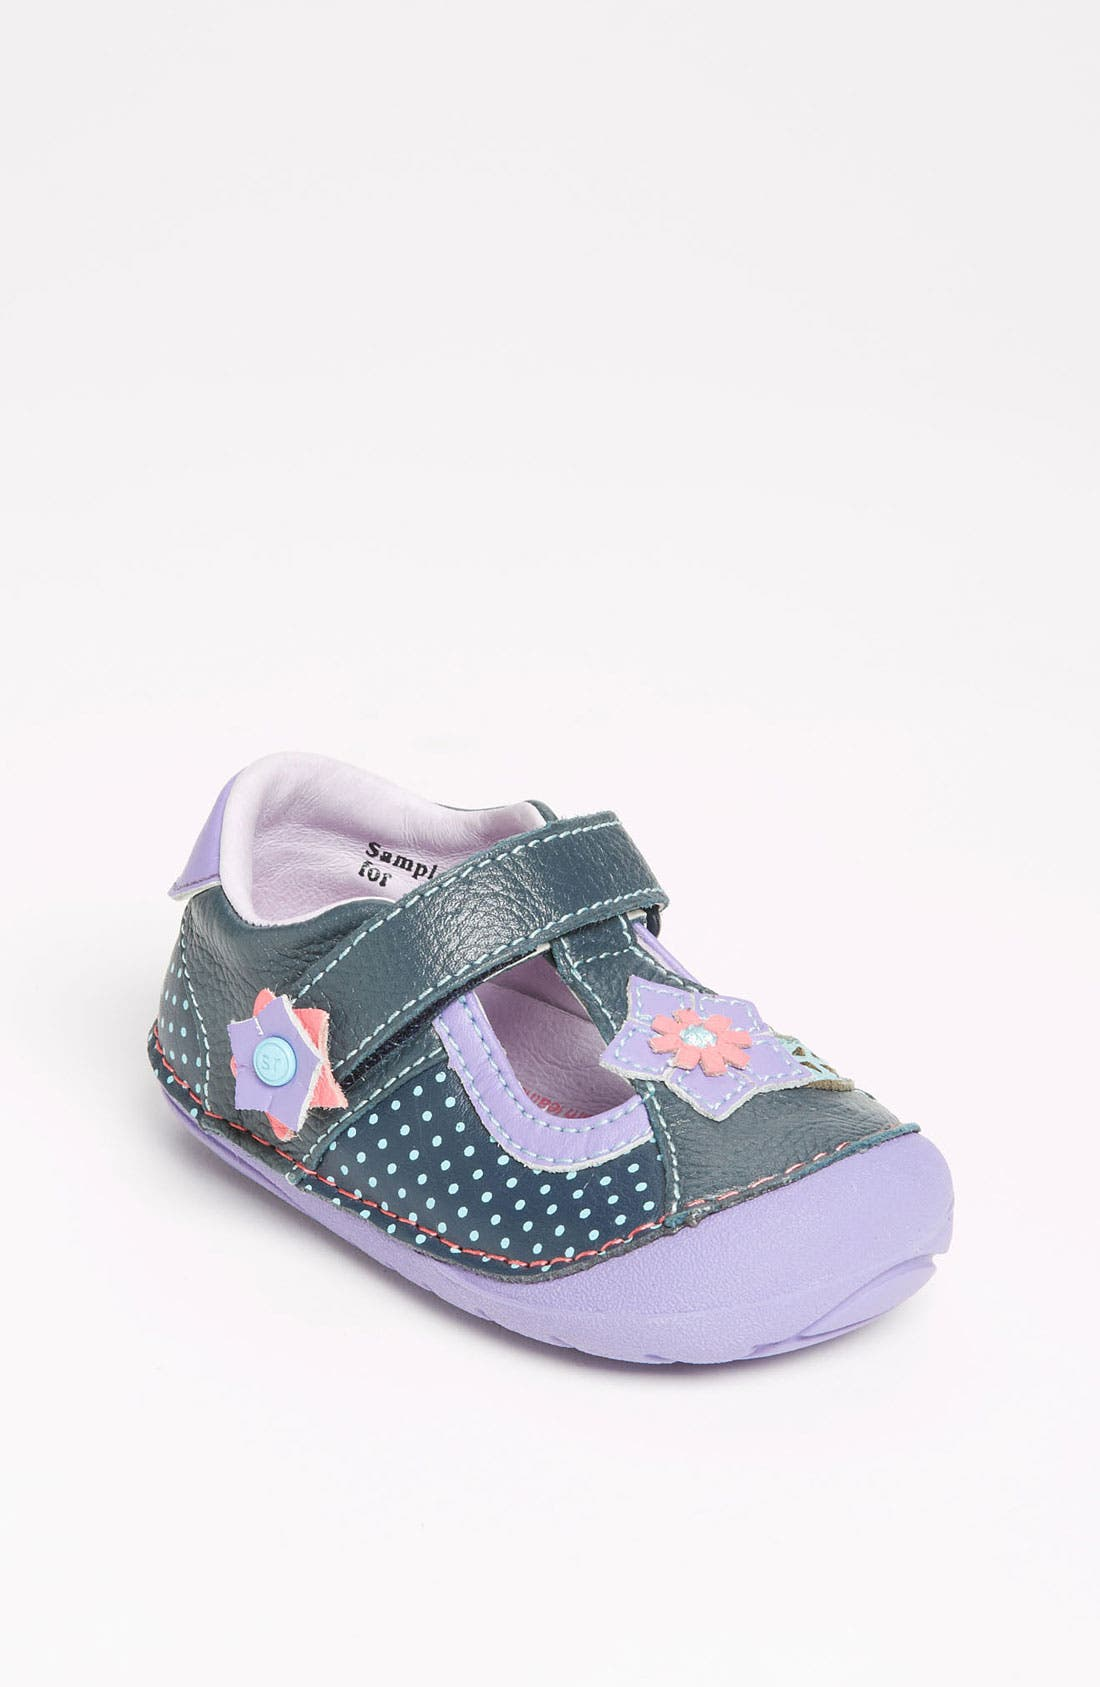 Alternate Image 1 Selected - Stride Rite 'Viola' Sneaker (Baby & Walker)